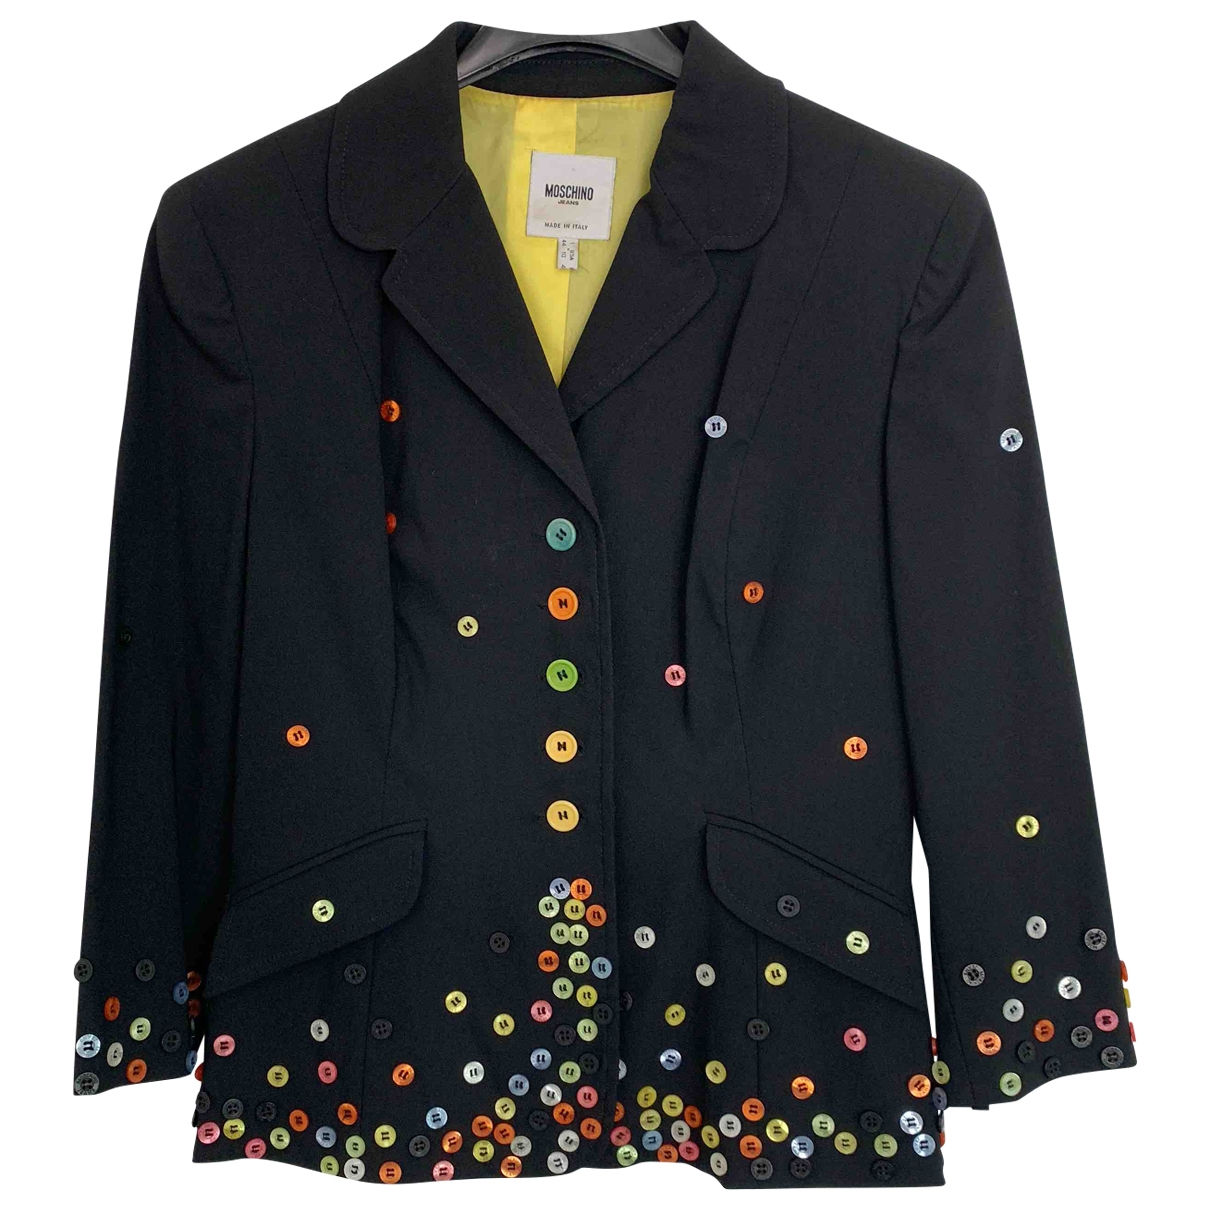 Moschino Cheap And Chic \N Black jacket for Women 44 IT